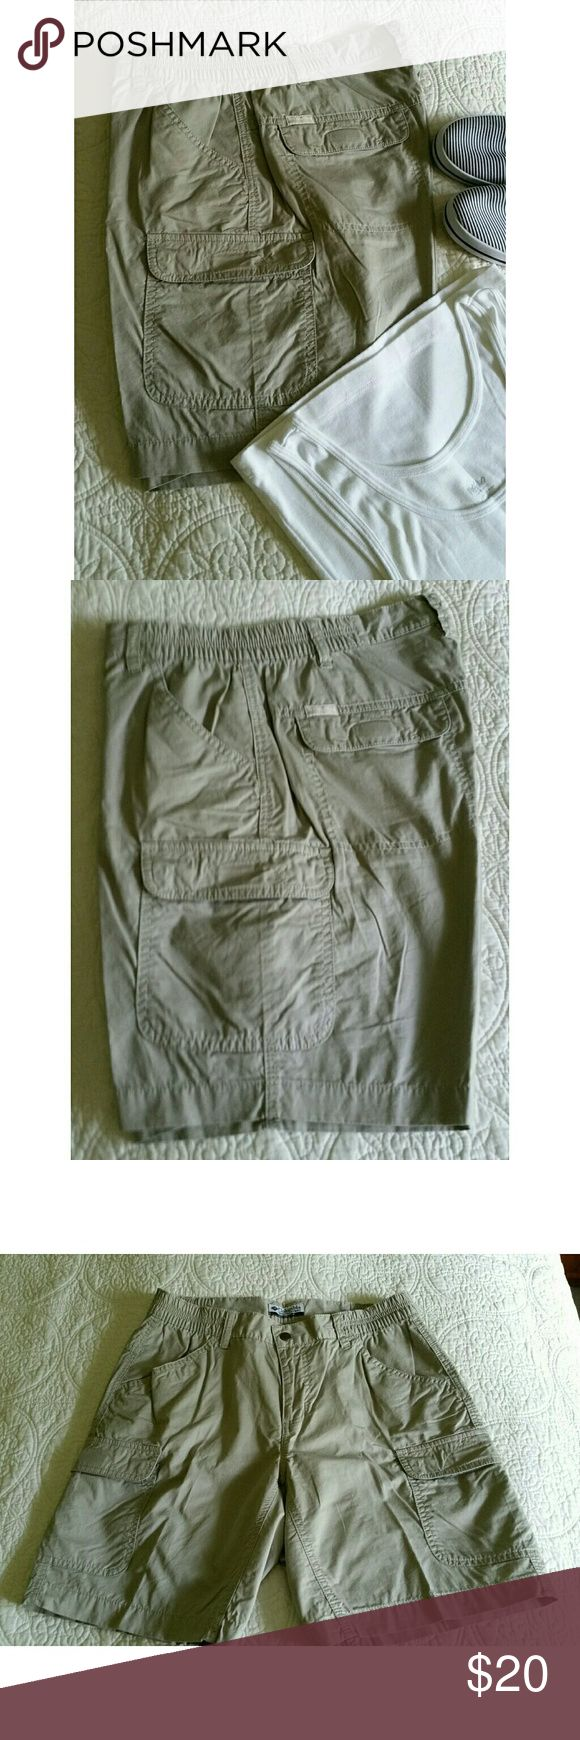 """JUST IN"" Columbia Shorts NWOT  Never worn  2 Velcro closure pockets back 2 slant pockets front  Velcro closure pockets both side Inseam 7 ""  Sits at the navel. NOTE Will fit women's size 28"" Columbia Sportswear Company Shorts"